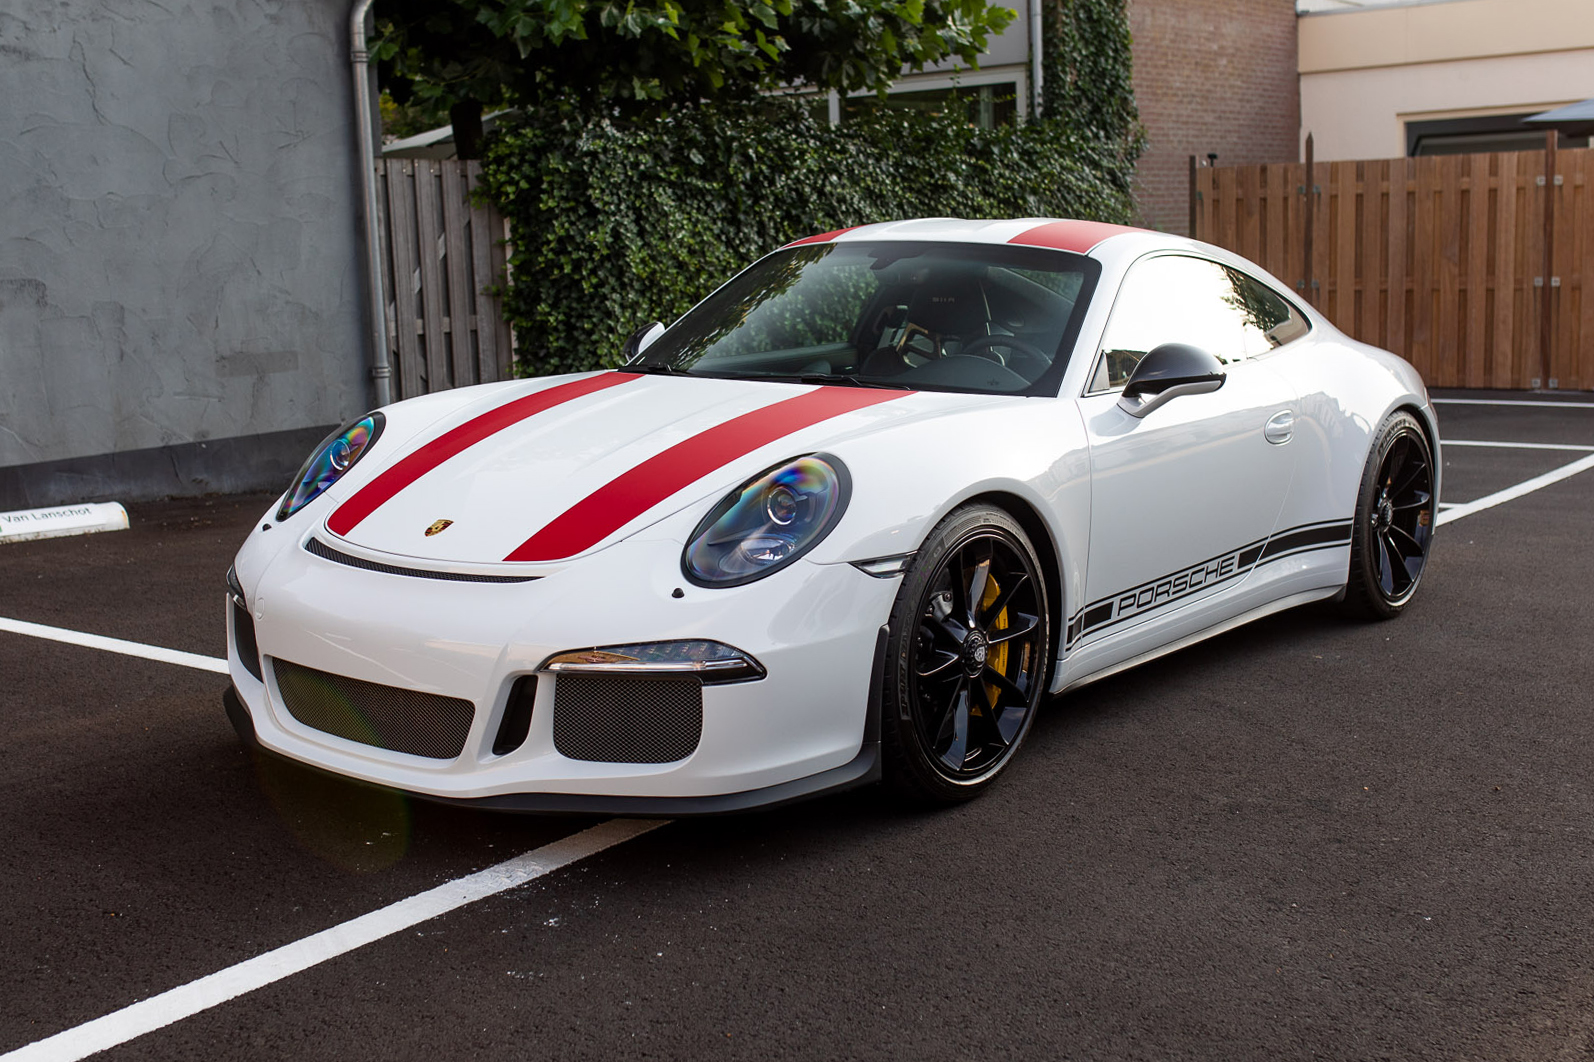 2016 PORSCHE 911 R - 113 KM FROM NEW - LHD